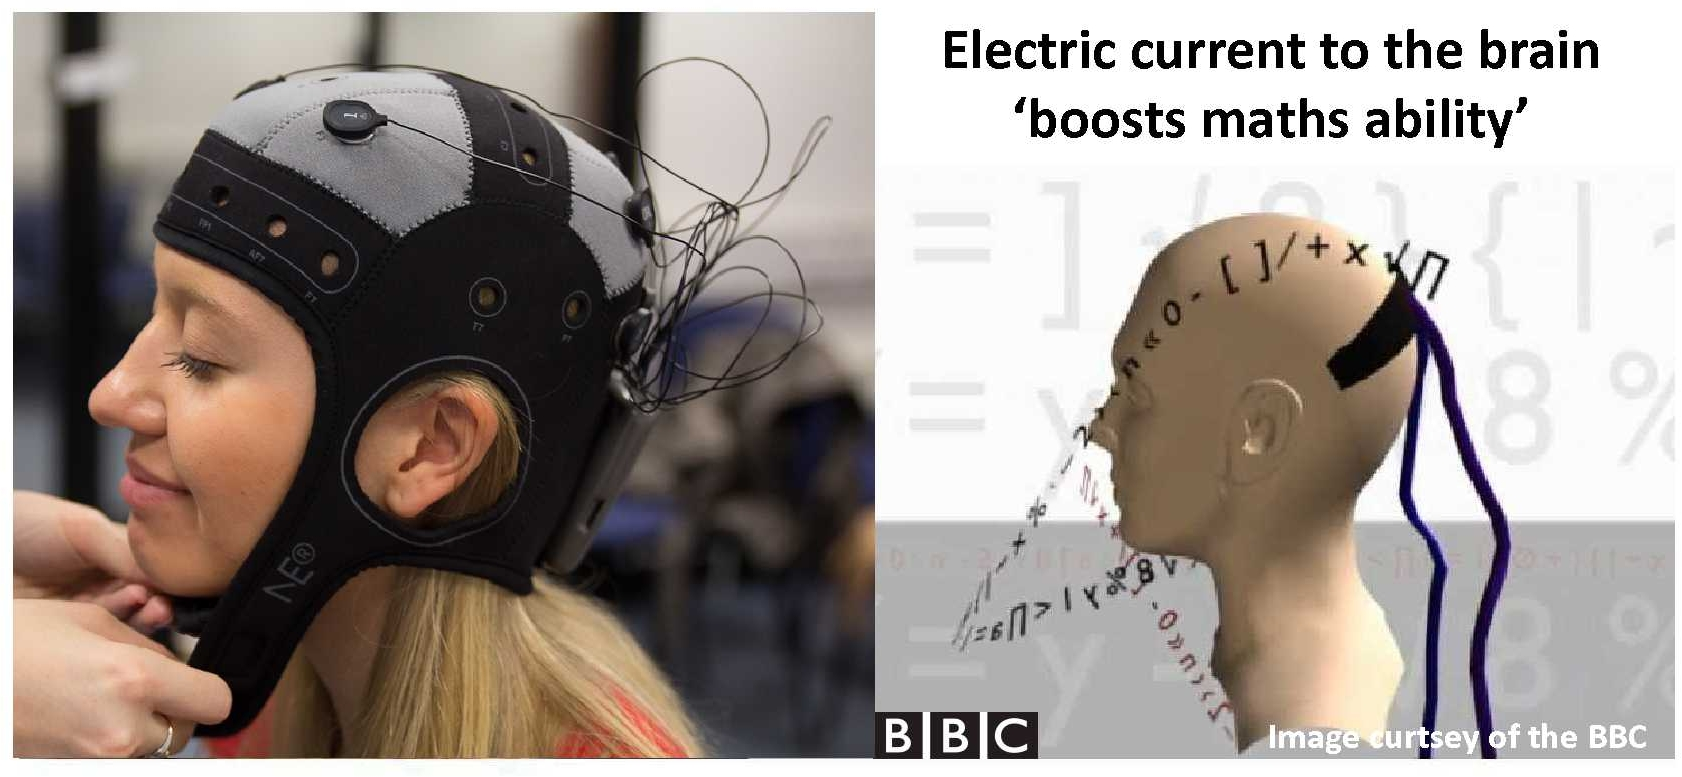 Our pioneering research has revealed that we can enhance cognition using mild non-invasive brain stimulation